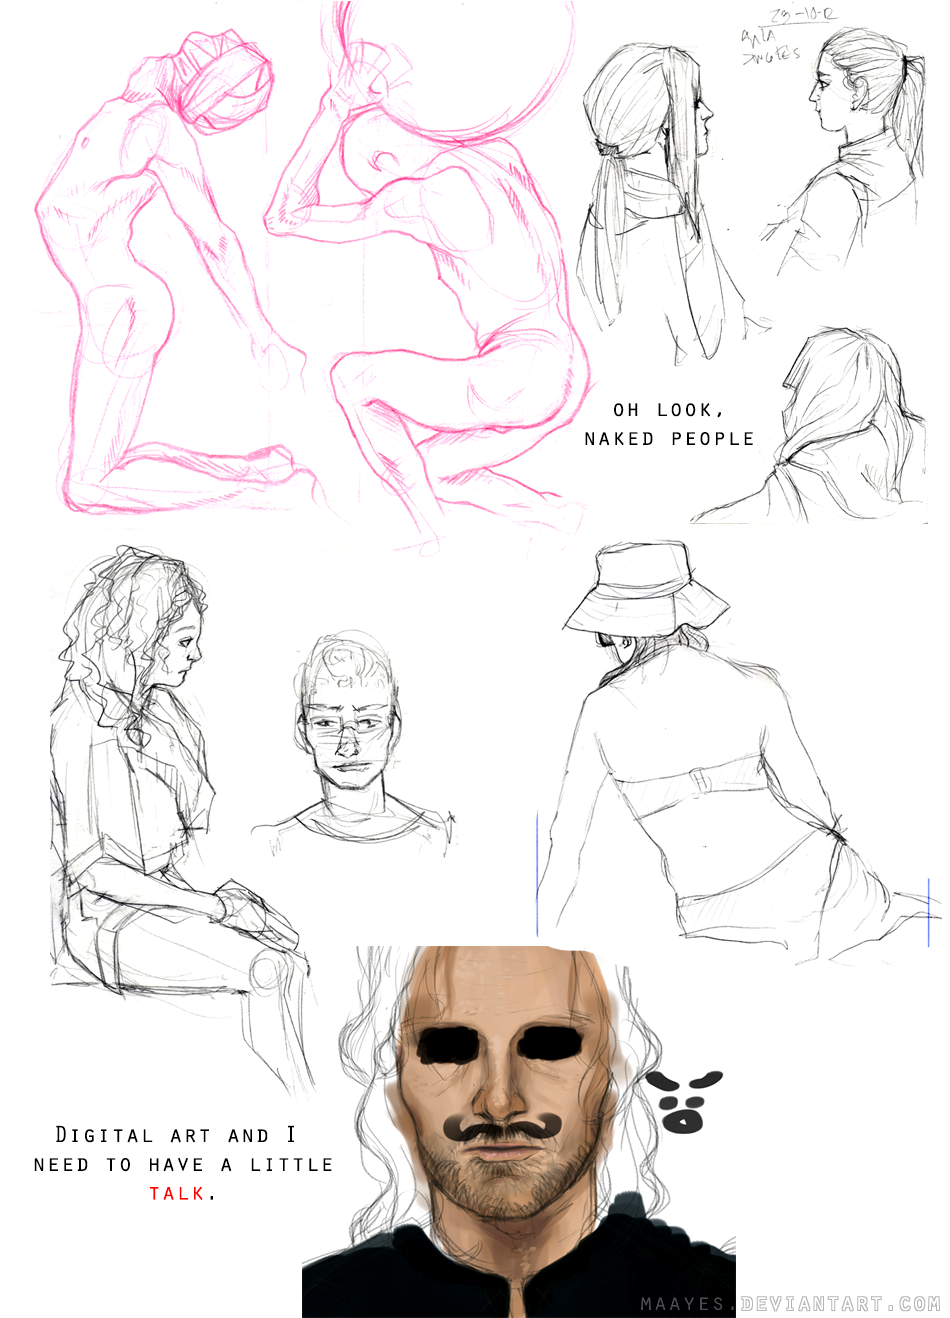 Sketchdump 2'' by maayes